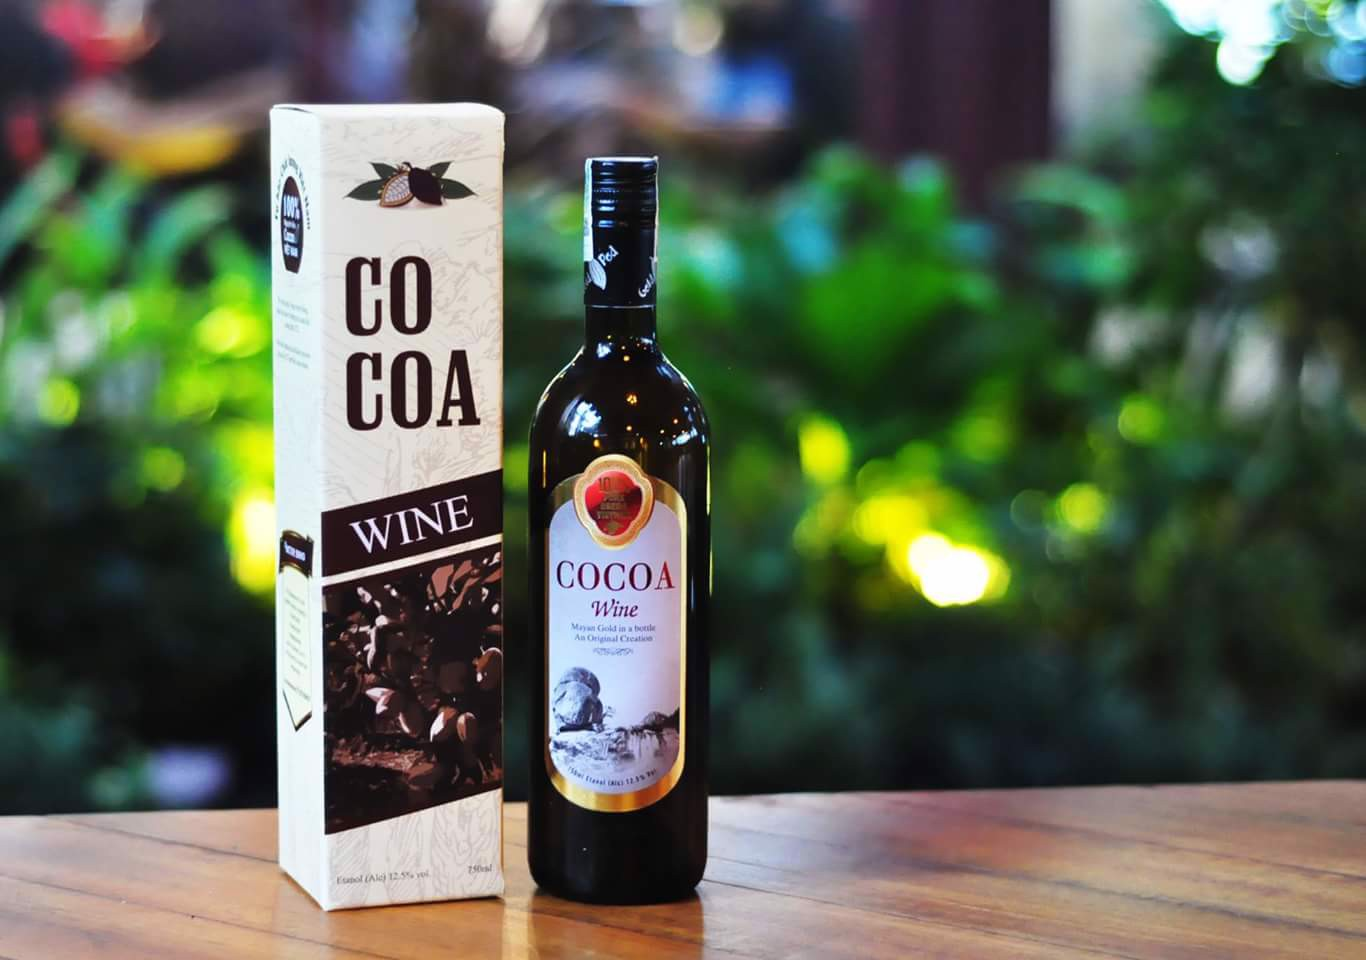 VANG CACAO VIỆT NAM (COCOA WINE VIE)